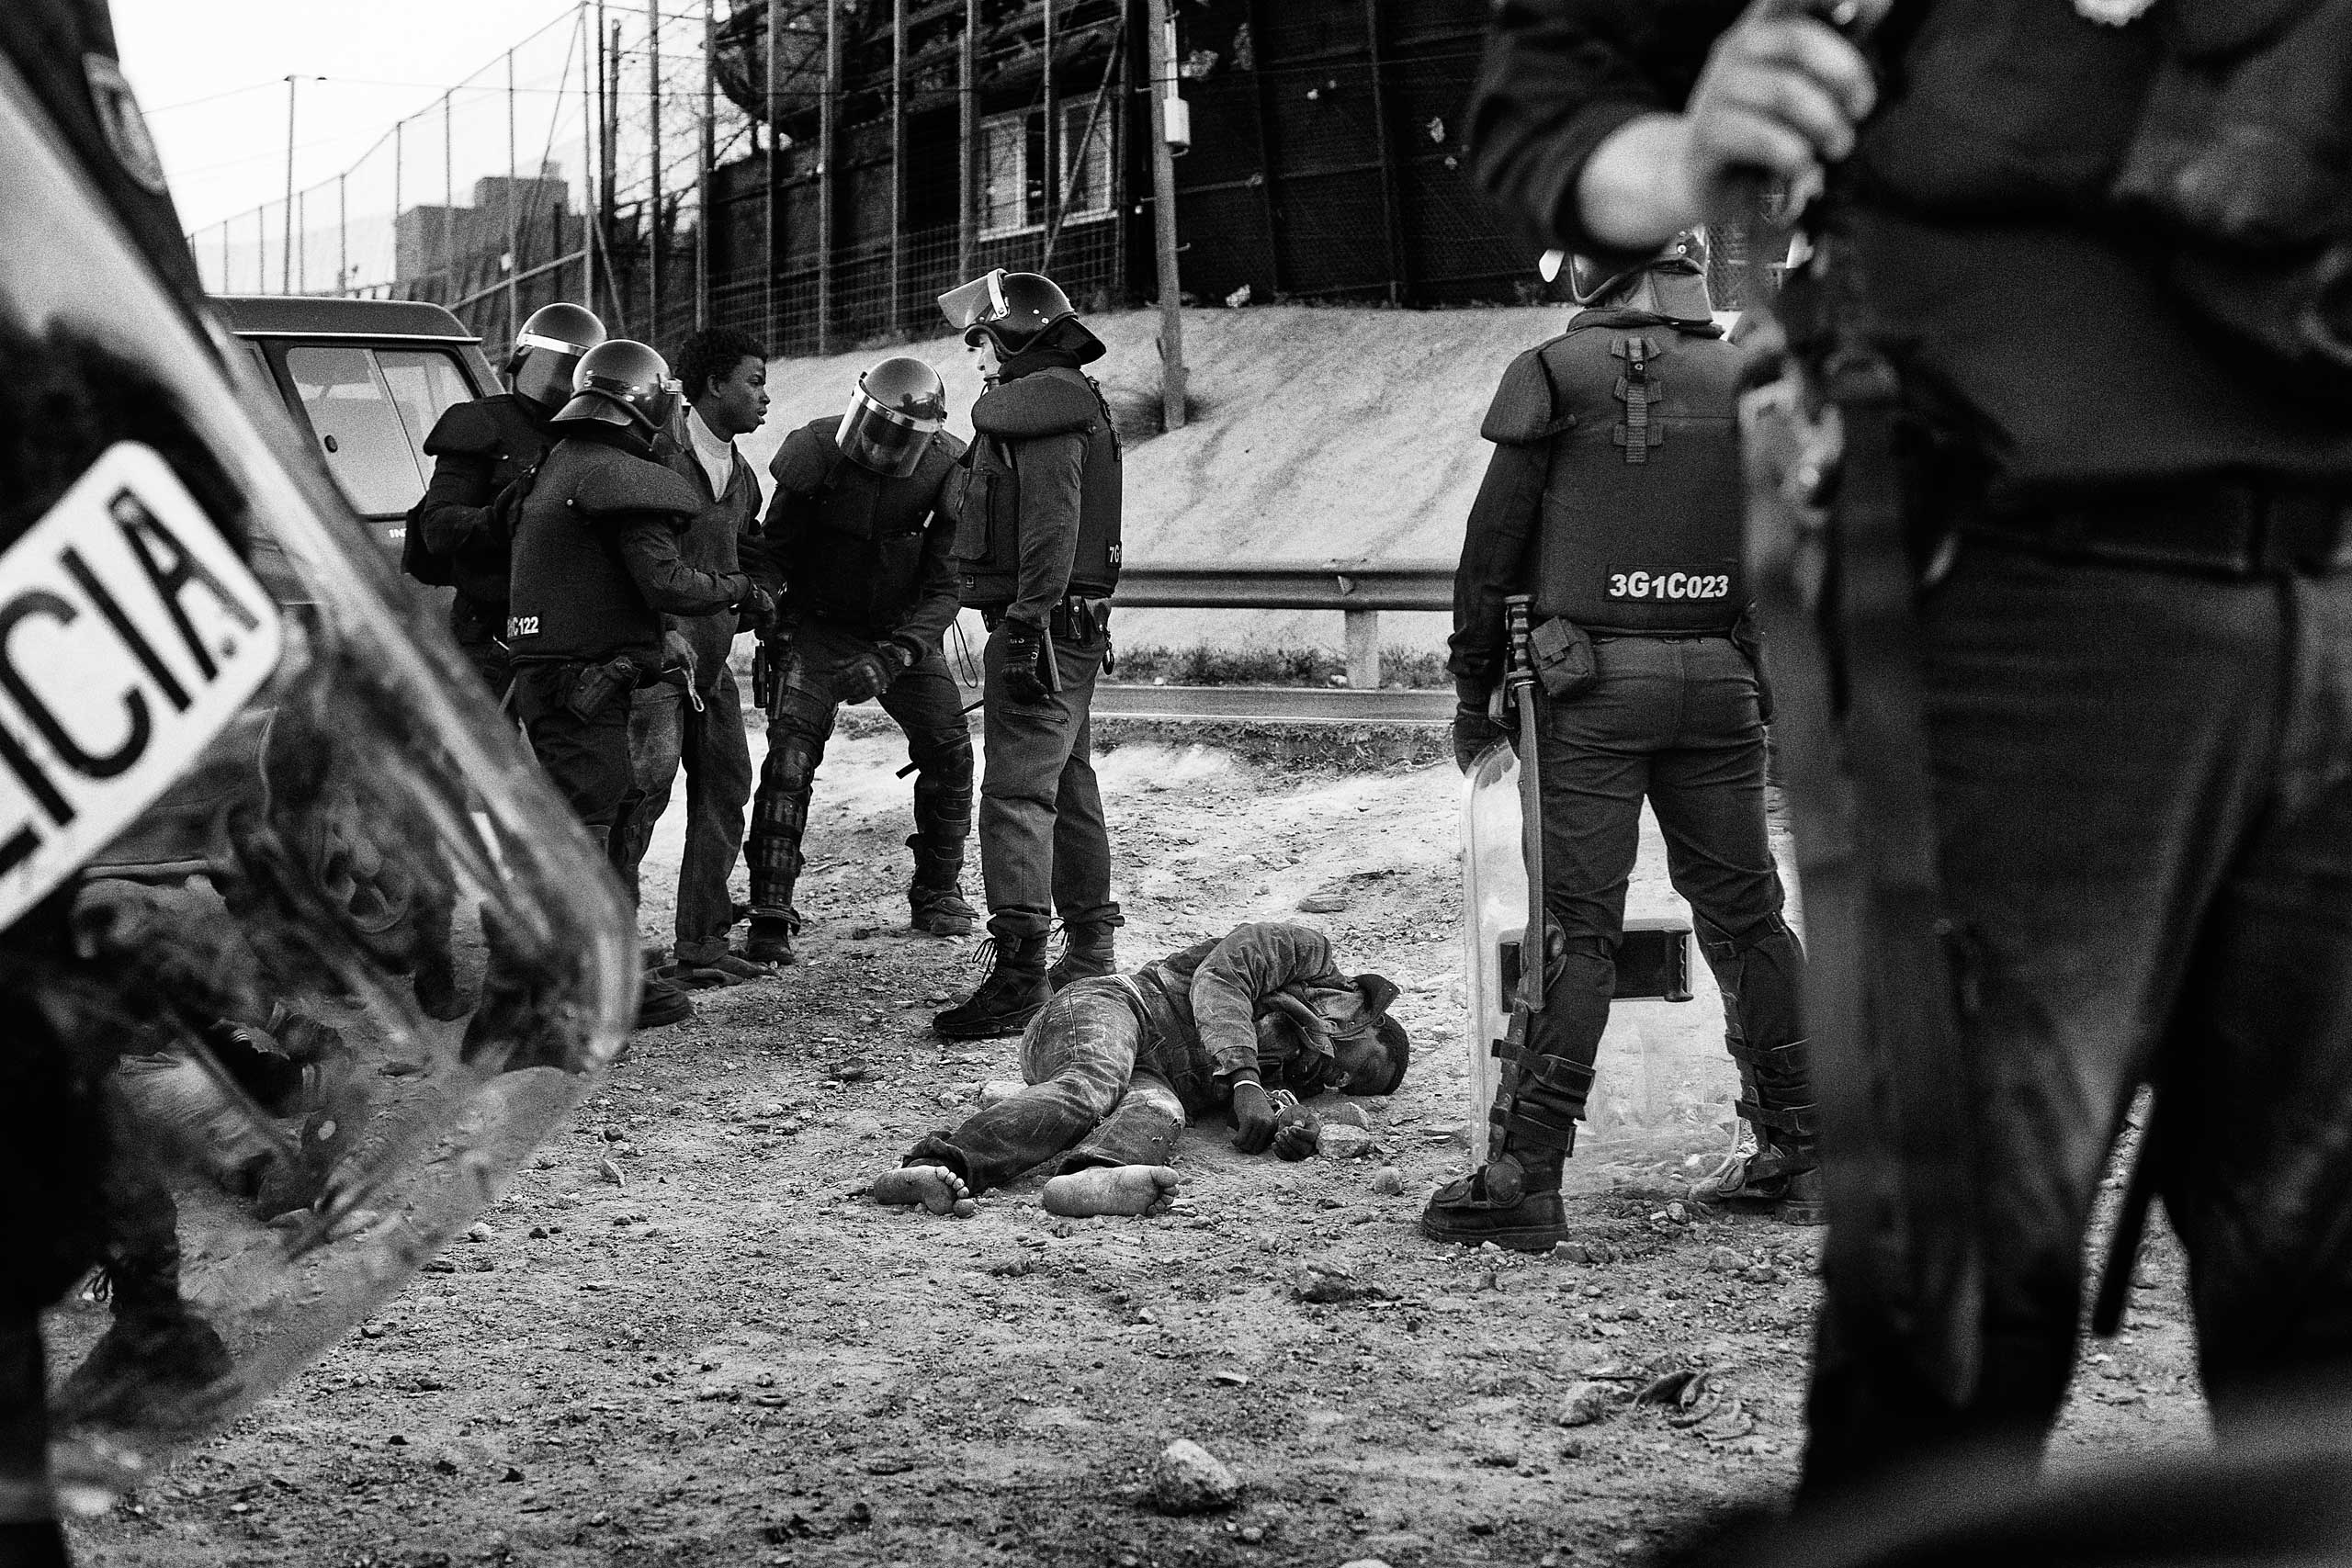 A Sub-Saharan migrant lays on the ground after a clash with the anti-riot police in Melilla in 2014.